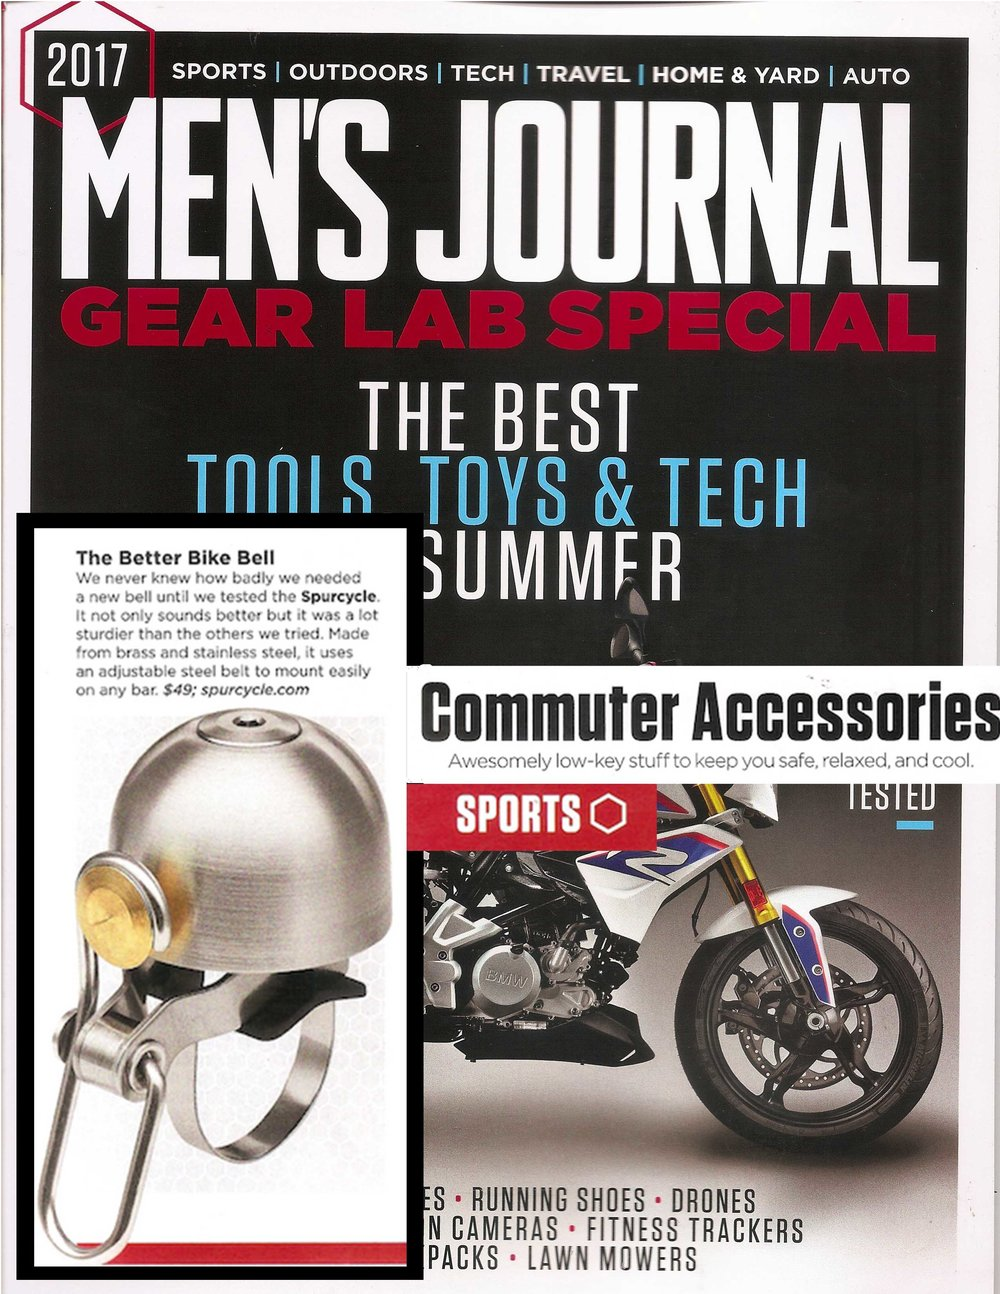 MensJournal_bell_04Apr17.jpg